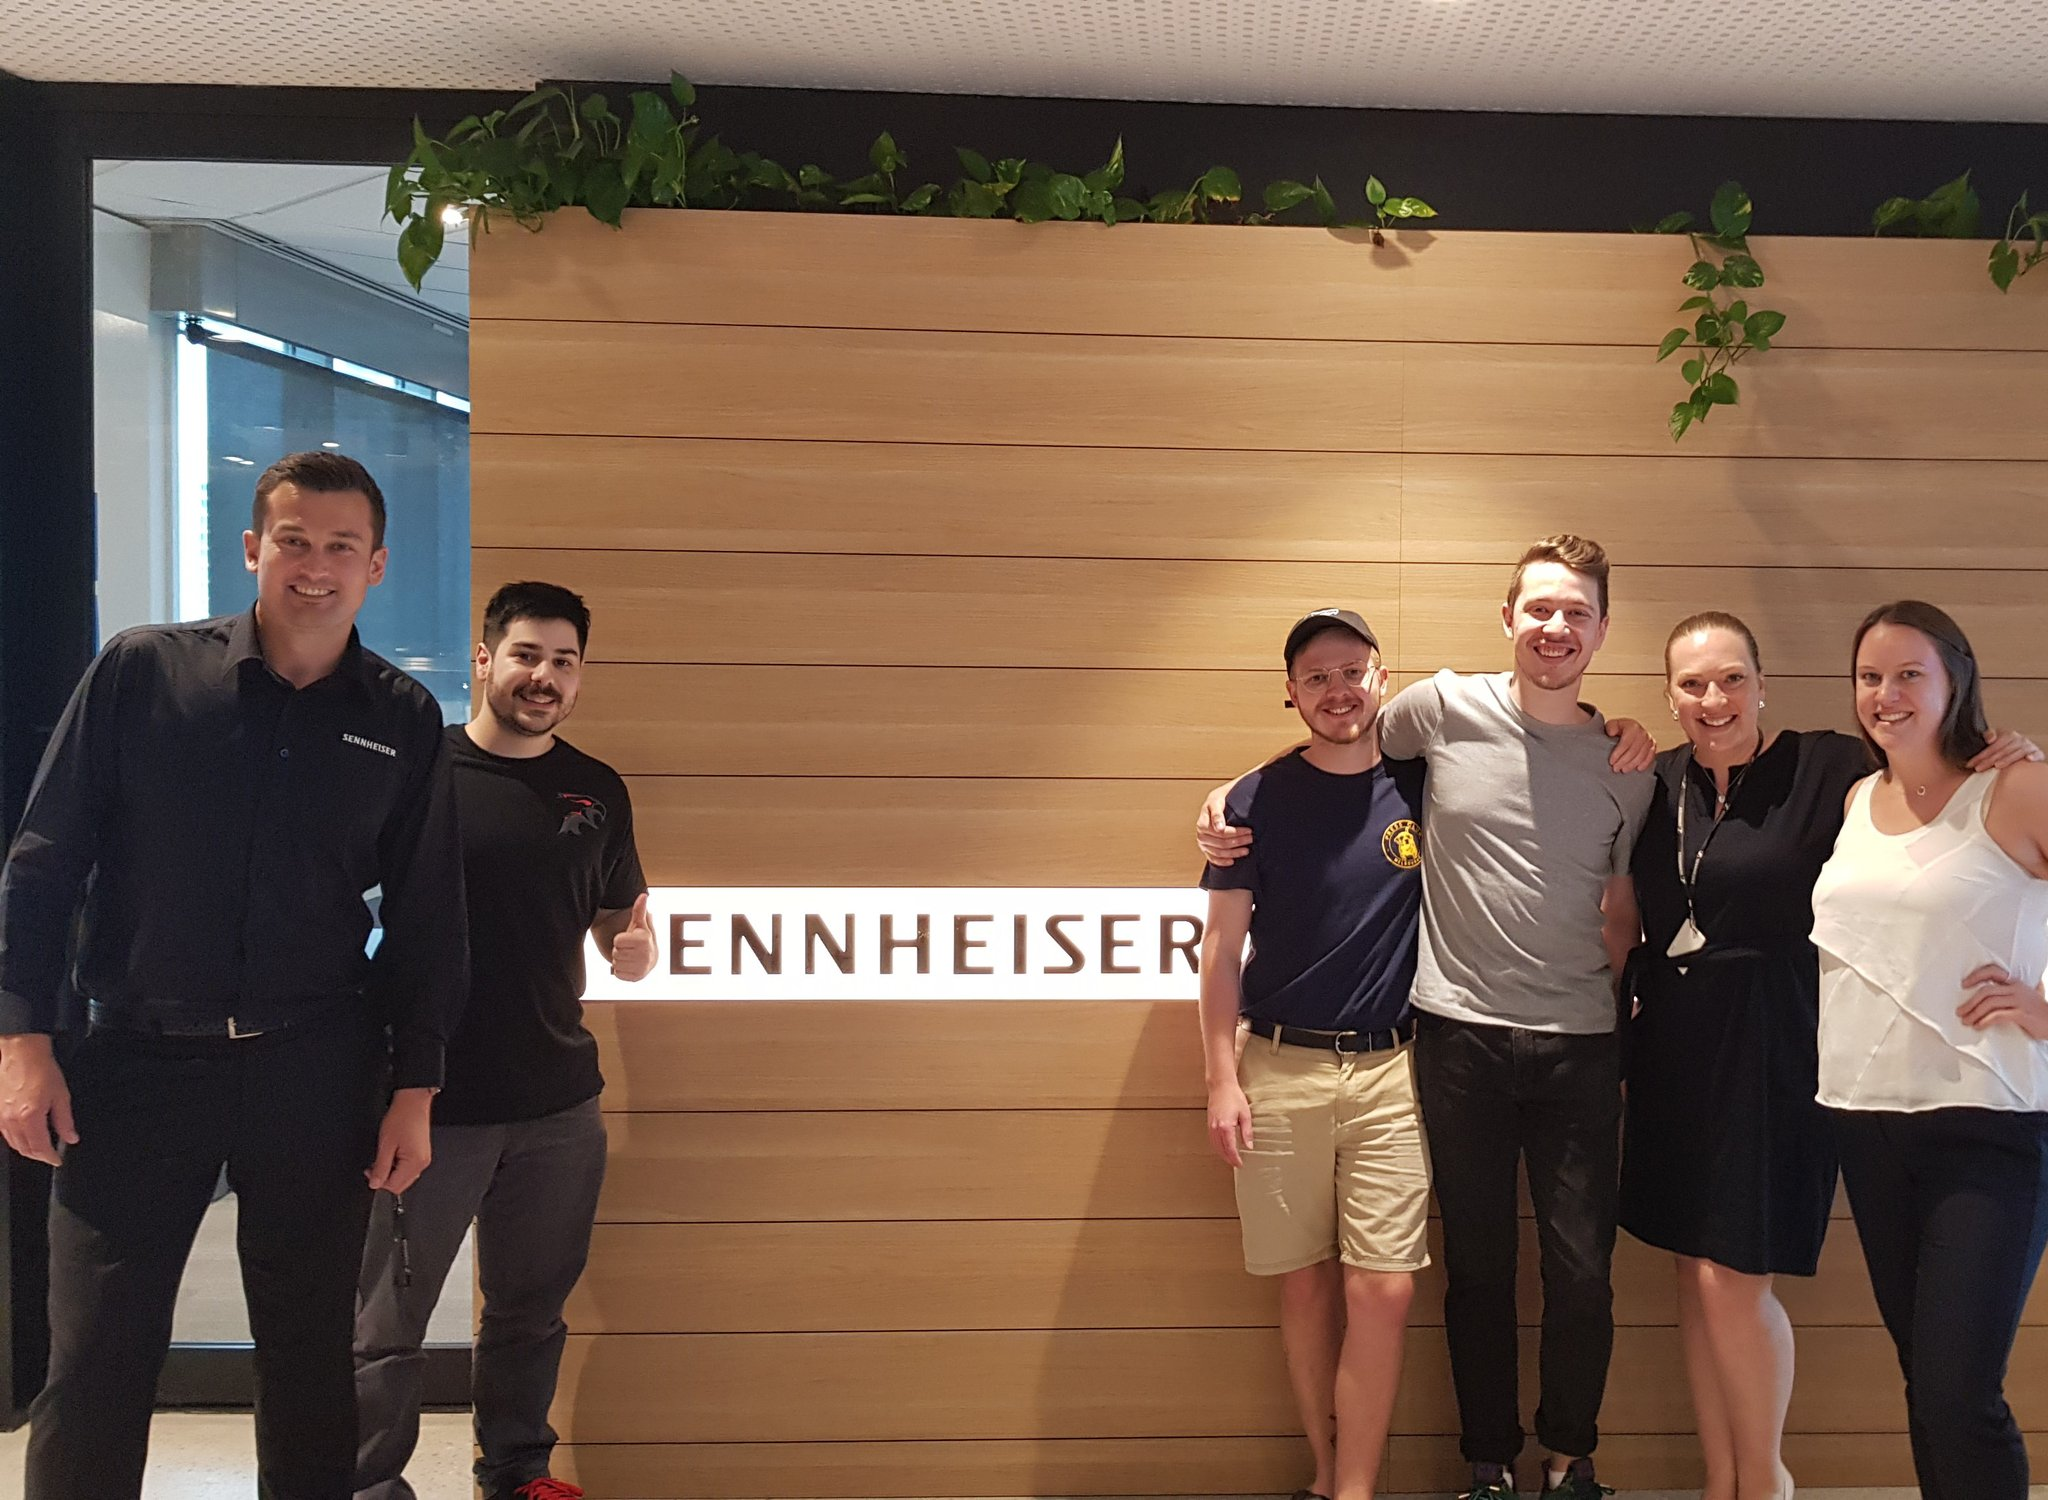 Dark Sided Management Team visiting the new Sennheiser head office in Sydney (Dec, 2018).